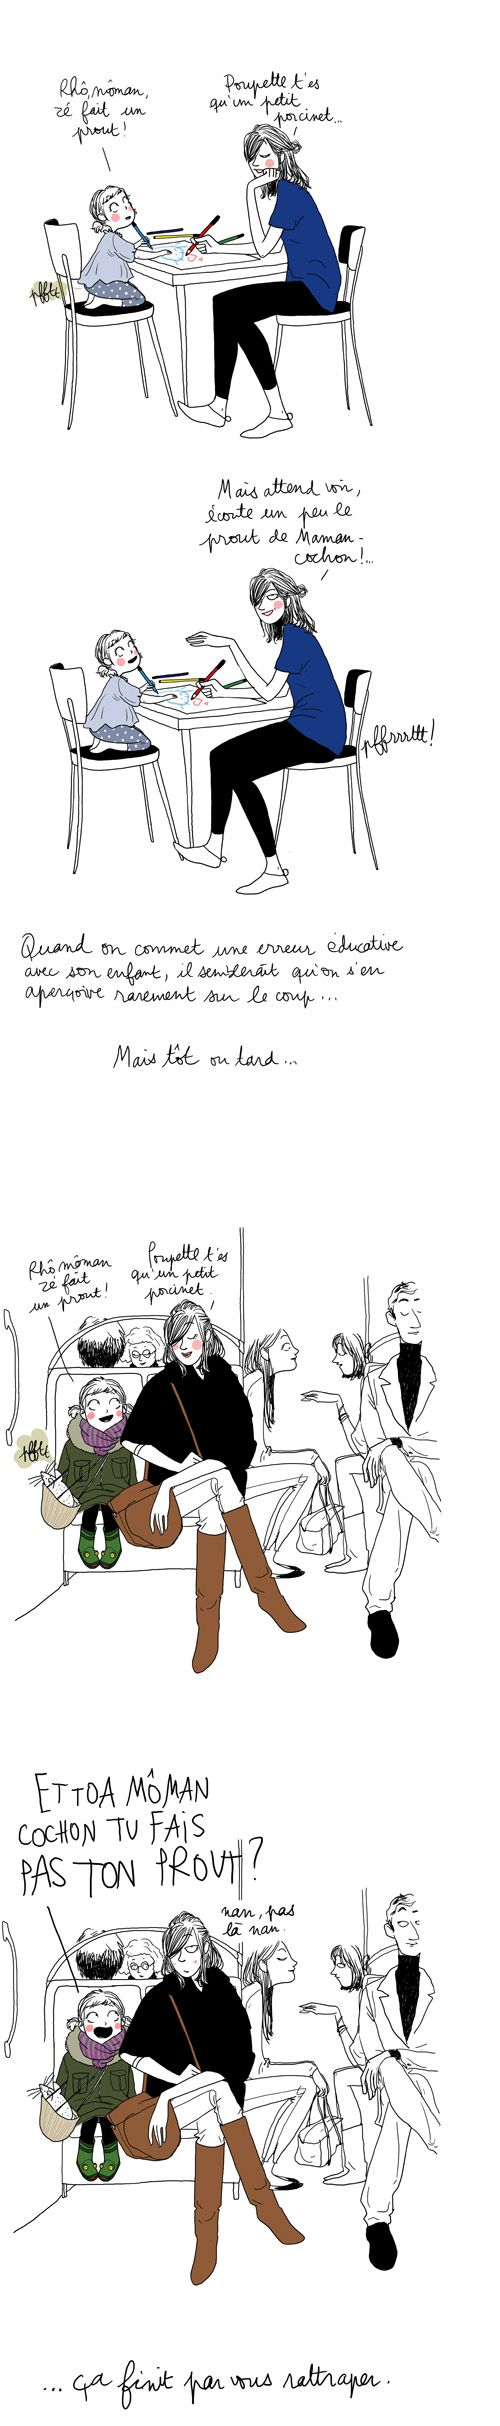 Prout 001 b: